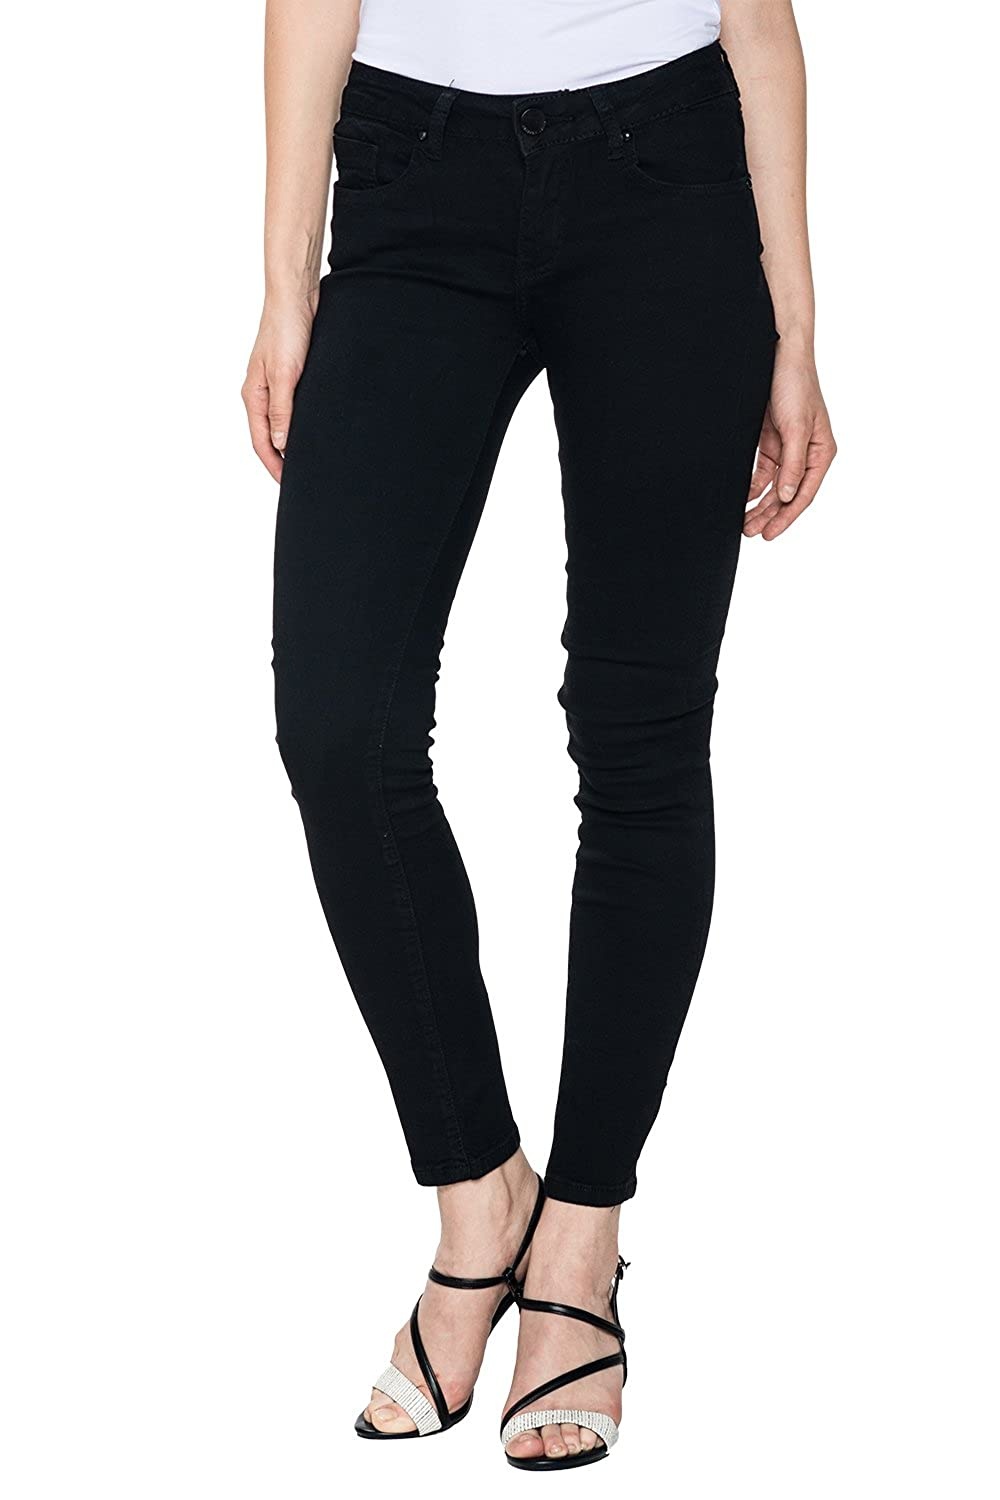 5558f037e3d high-quality Glostory Women s Skinny Jeans Casual Jegging Stretch Denim  Pencil Pants 2104B